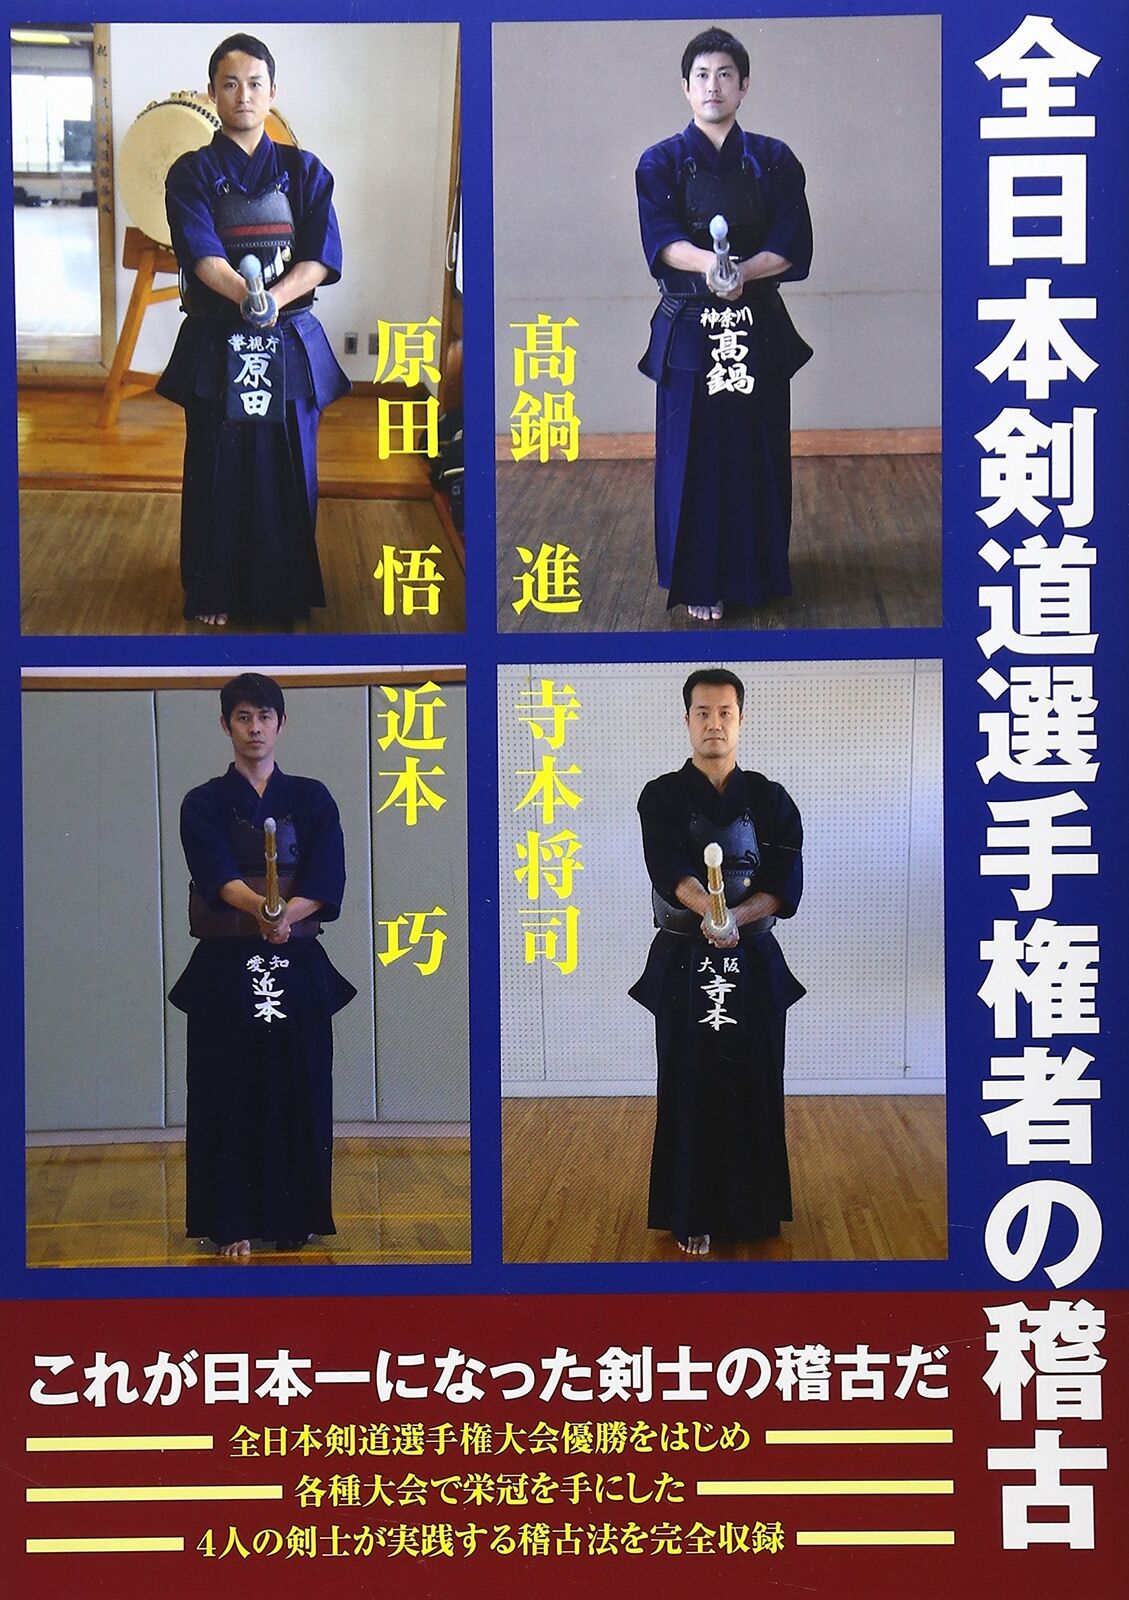 Practice of the All Japan Kendo Championship People Book